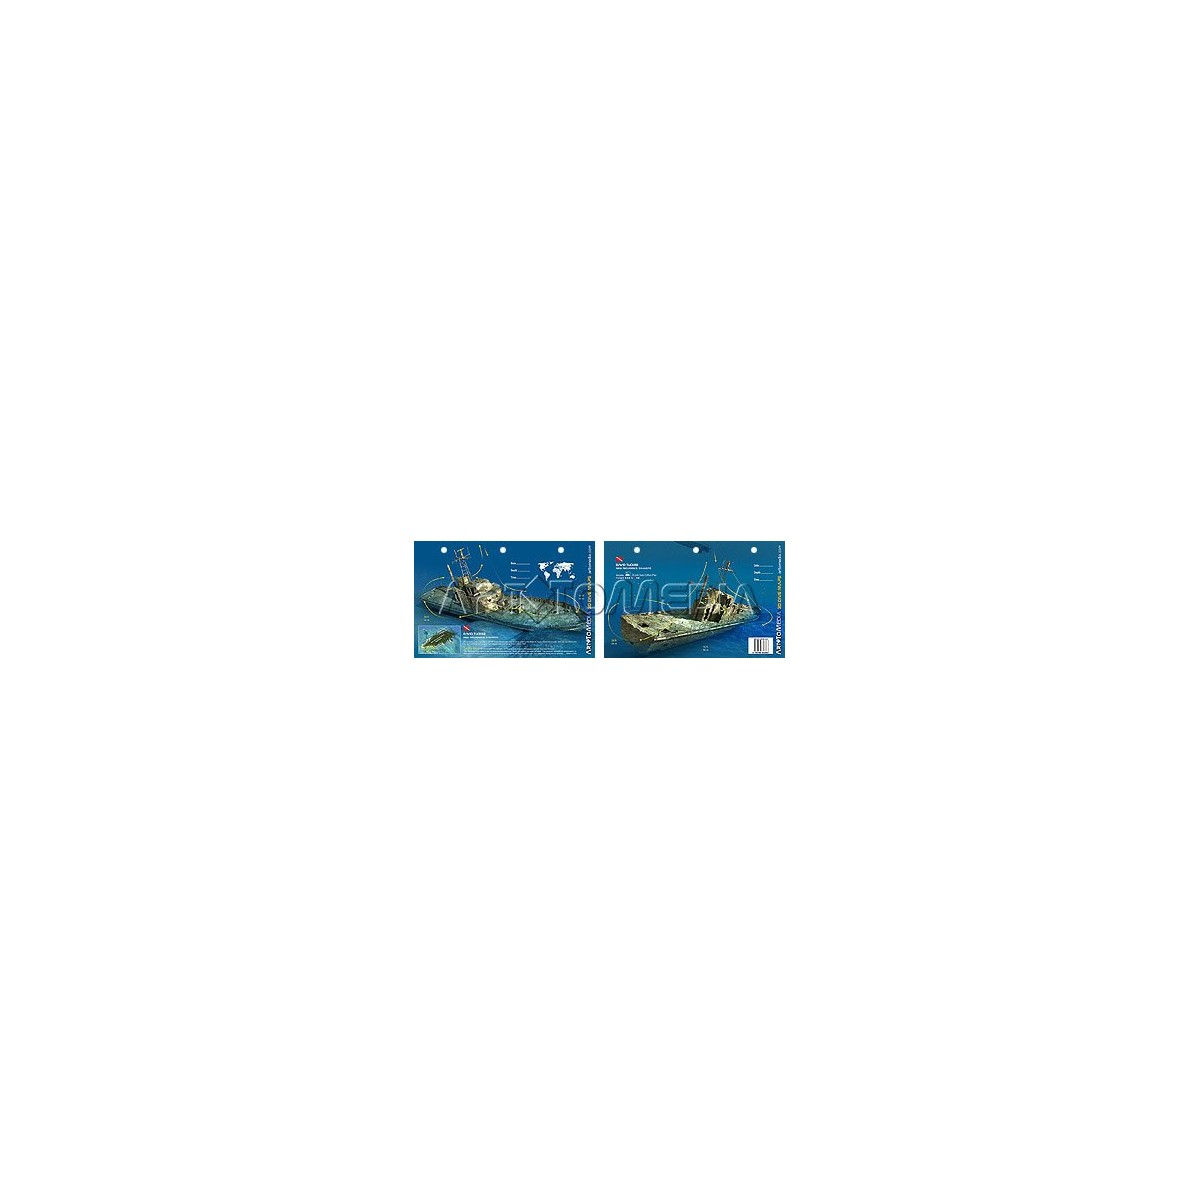 David Tucker in the Bahamas (8.5 x 5.5 Inches) (21.6 x 15cm) - New Art to Media Underwater Waterproof 3D Dive Site Map